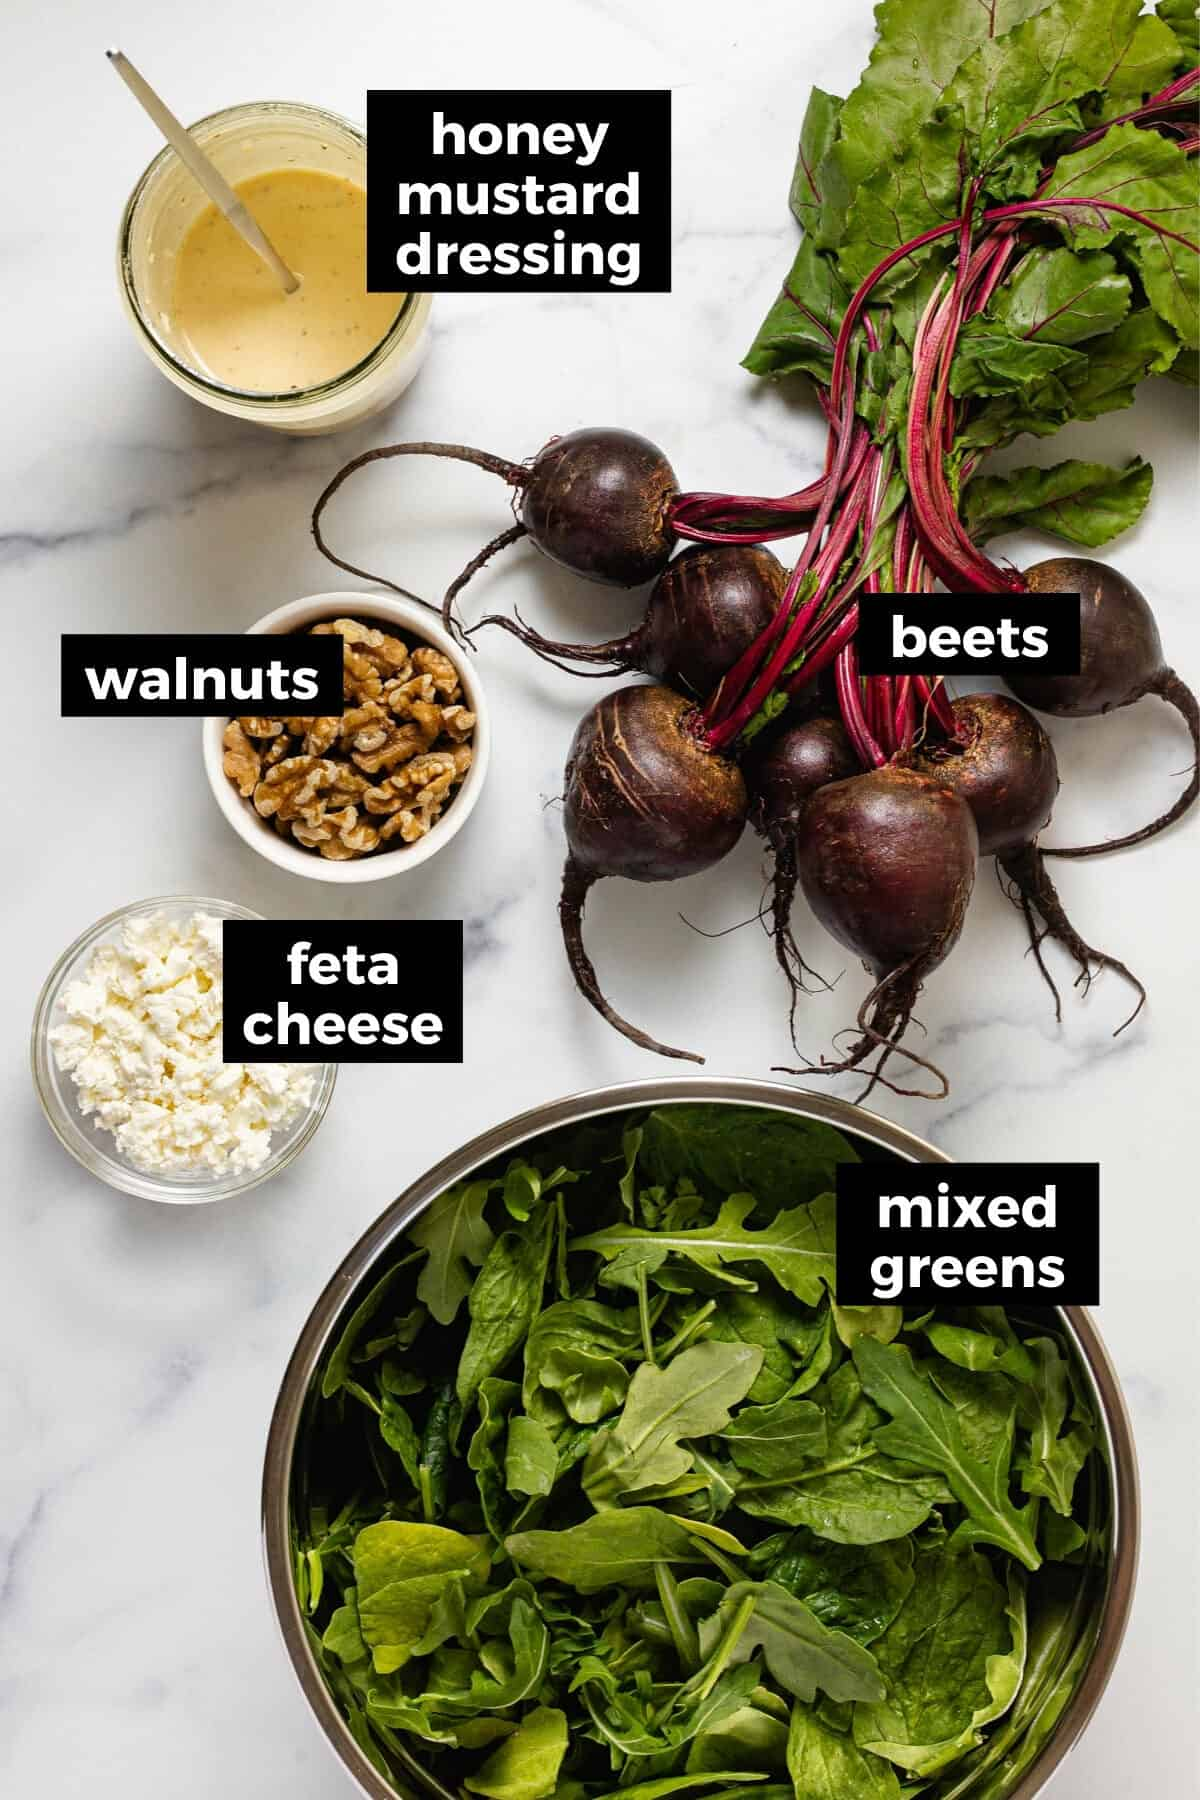 White marble counter top with ingredients to make beet and feta salad